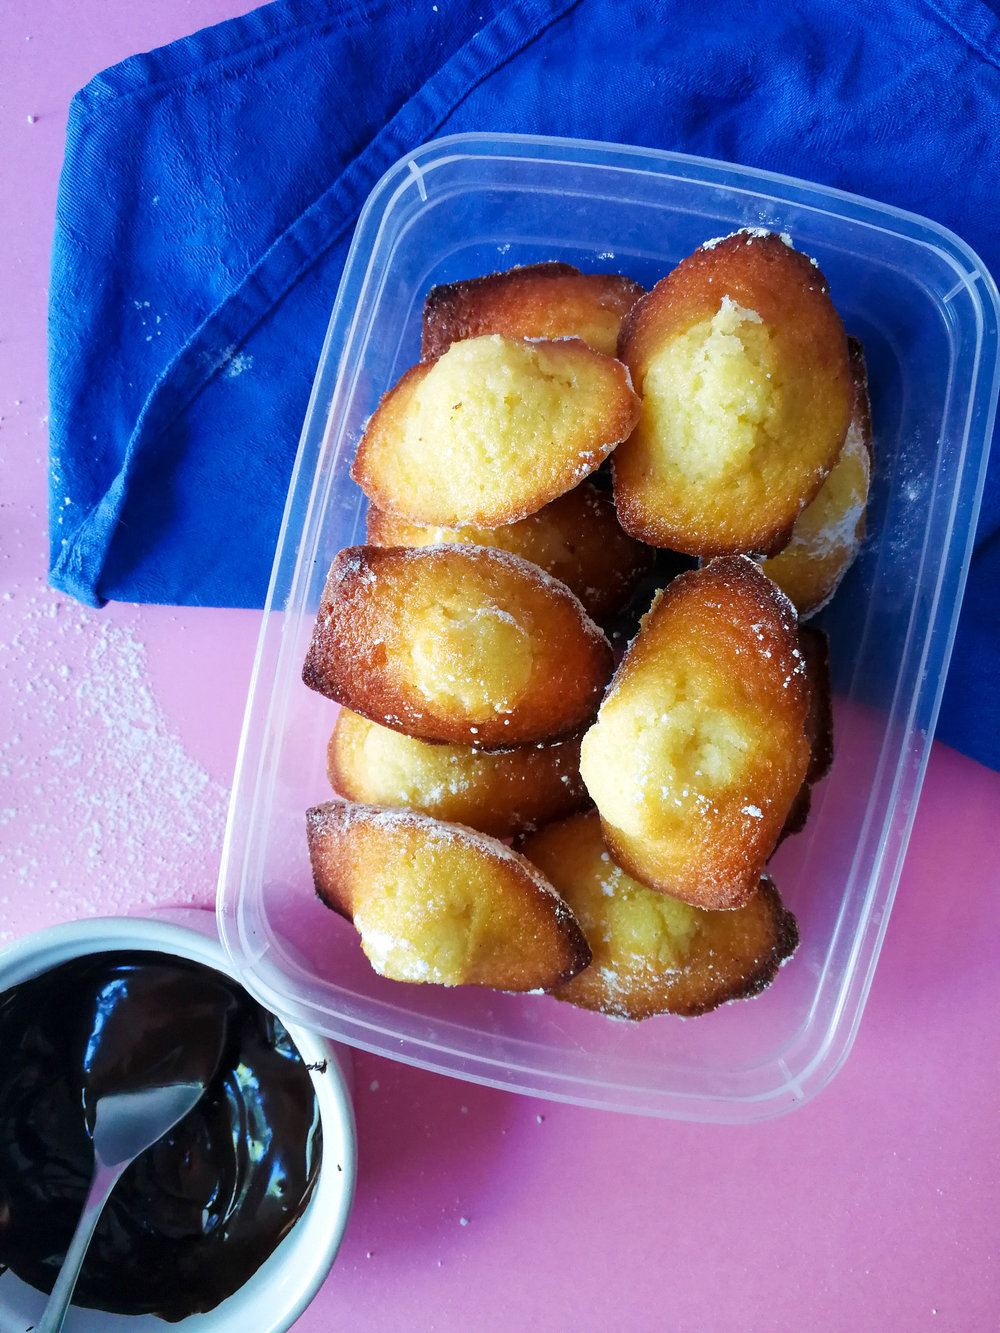 Madeleines store well for several days in the fridge and in an airtight container, but try to serve them at room temperature for the best flavour.